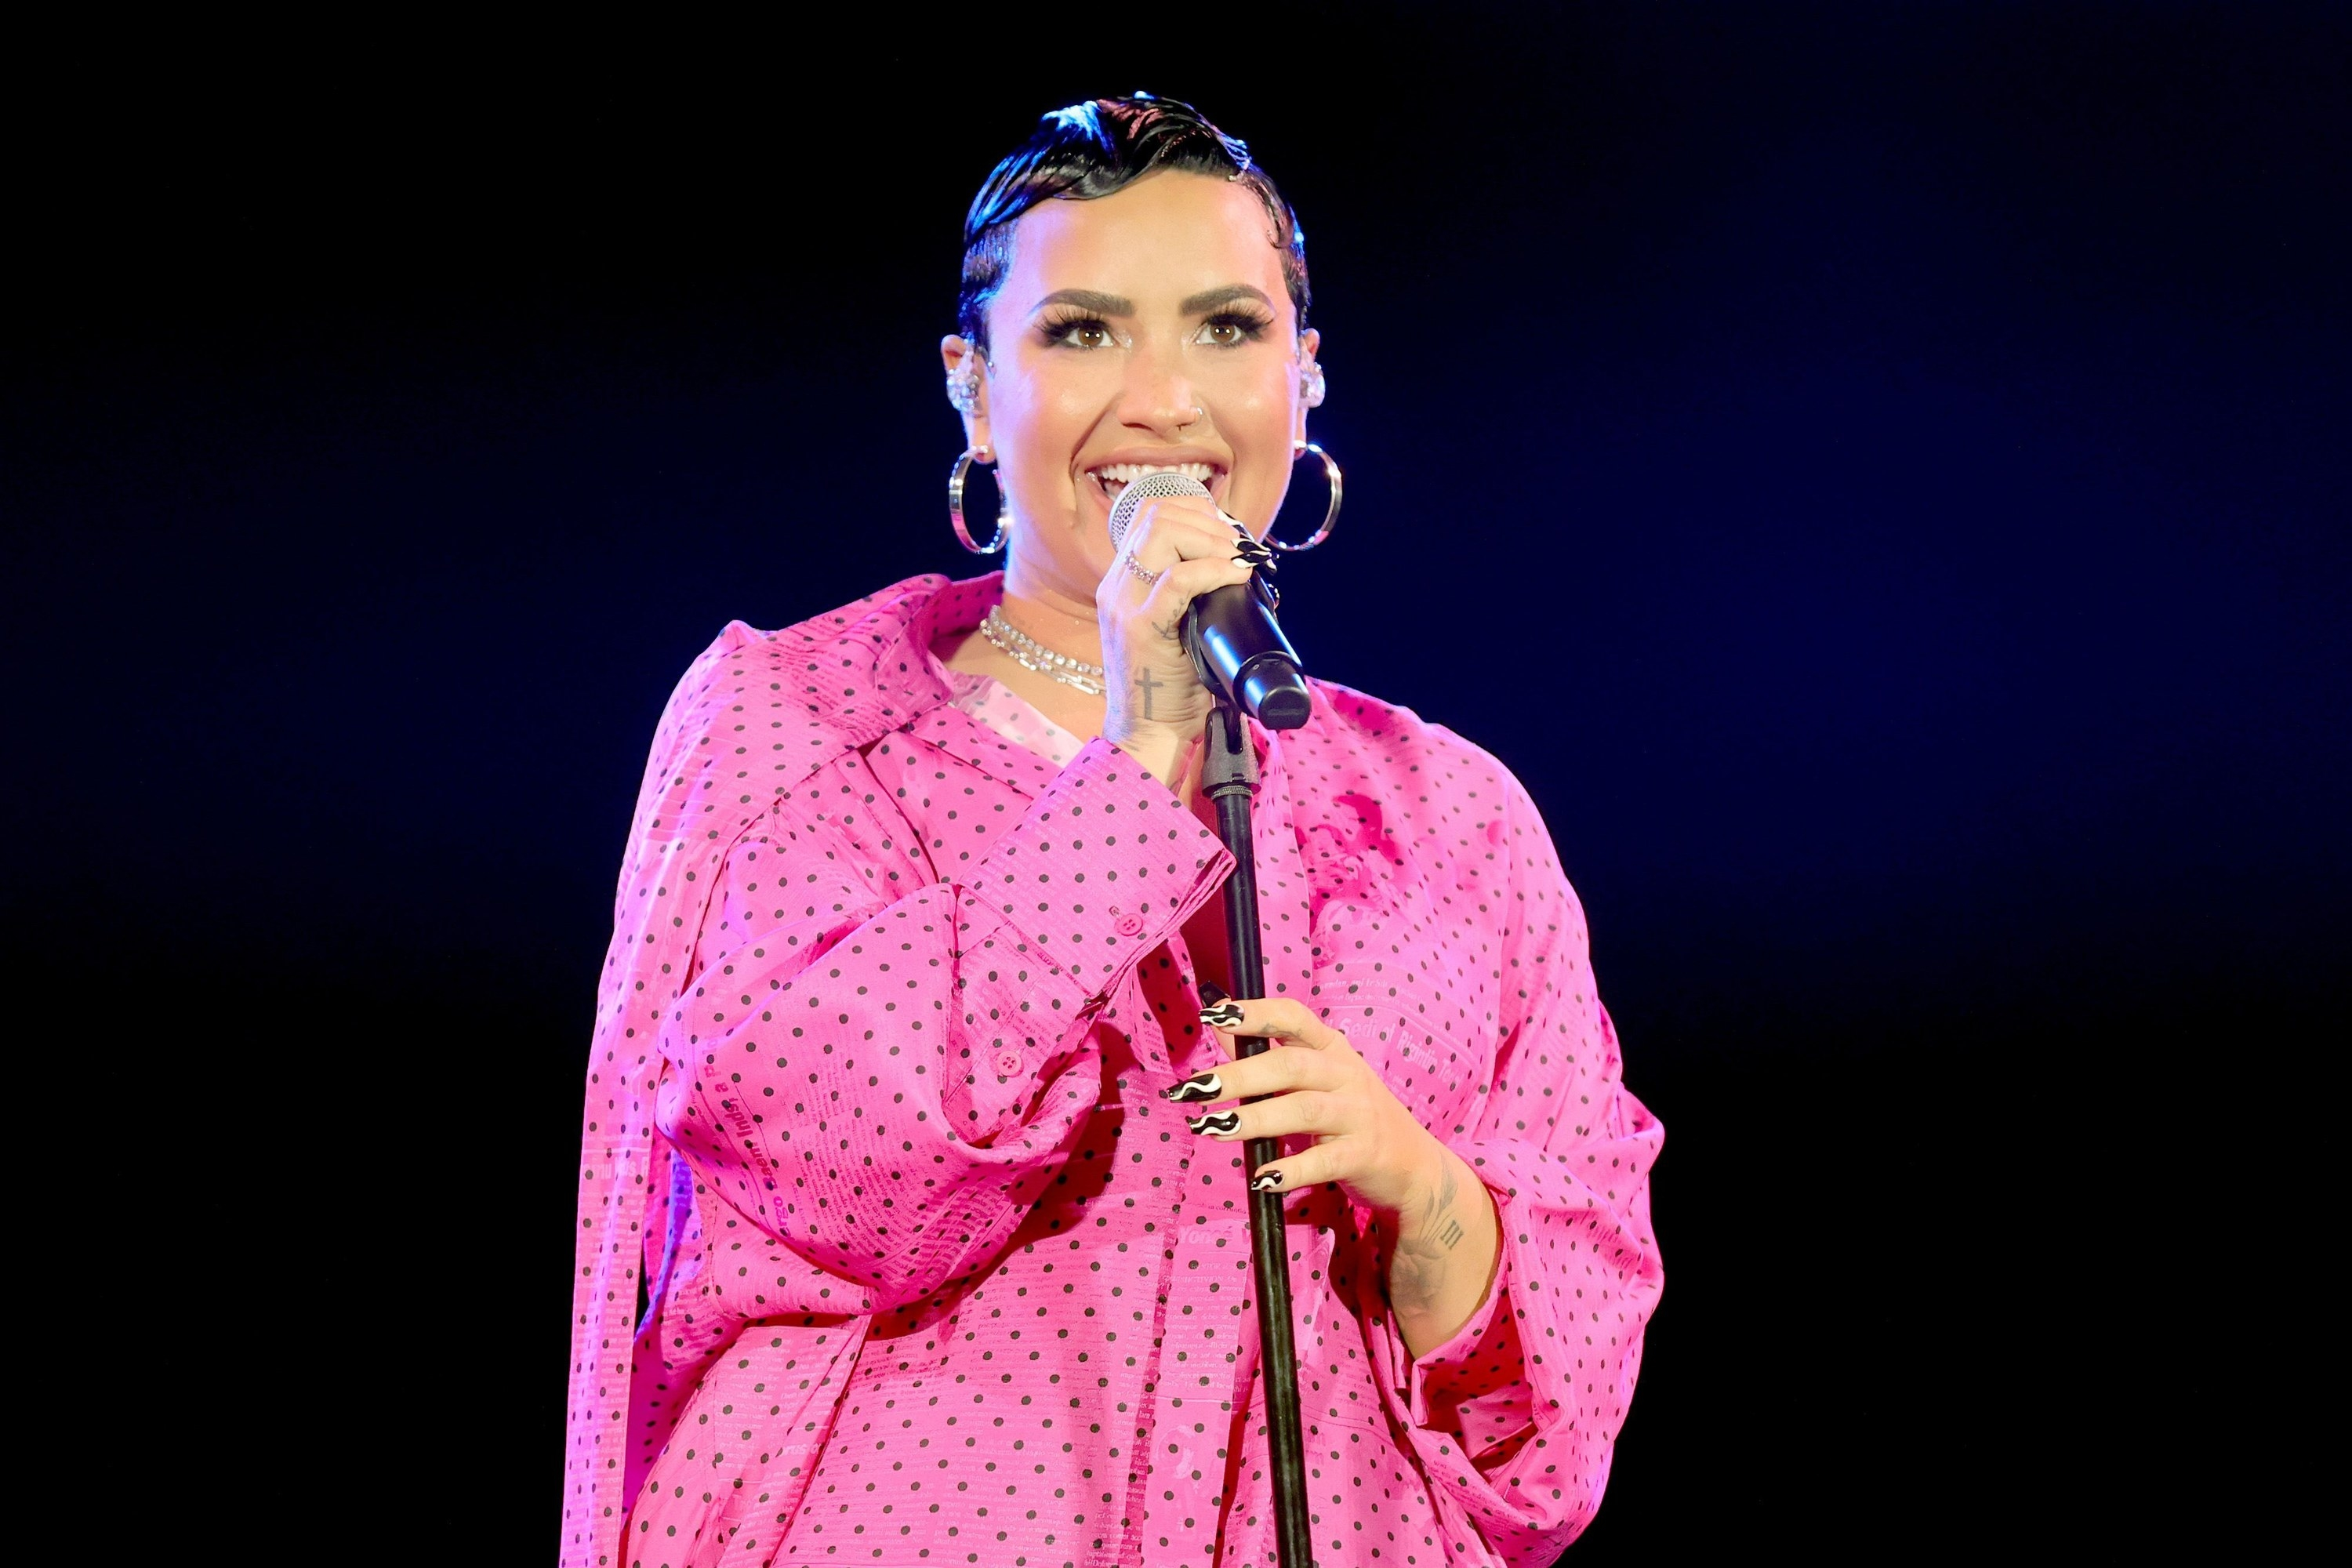 Demi smiles on stage while wearing a pink polka dot oversize shirt